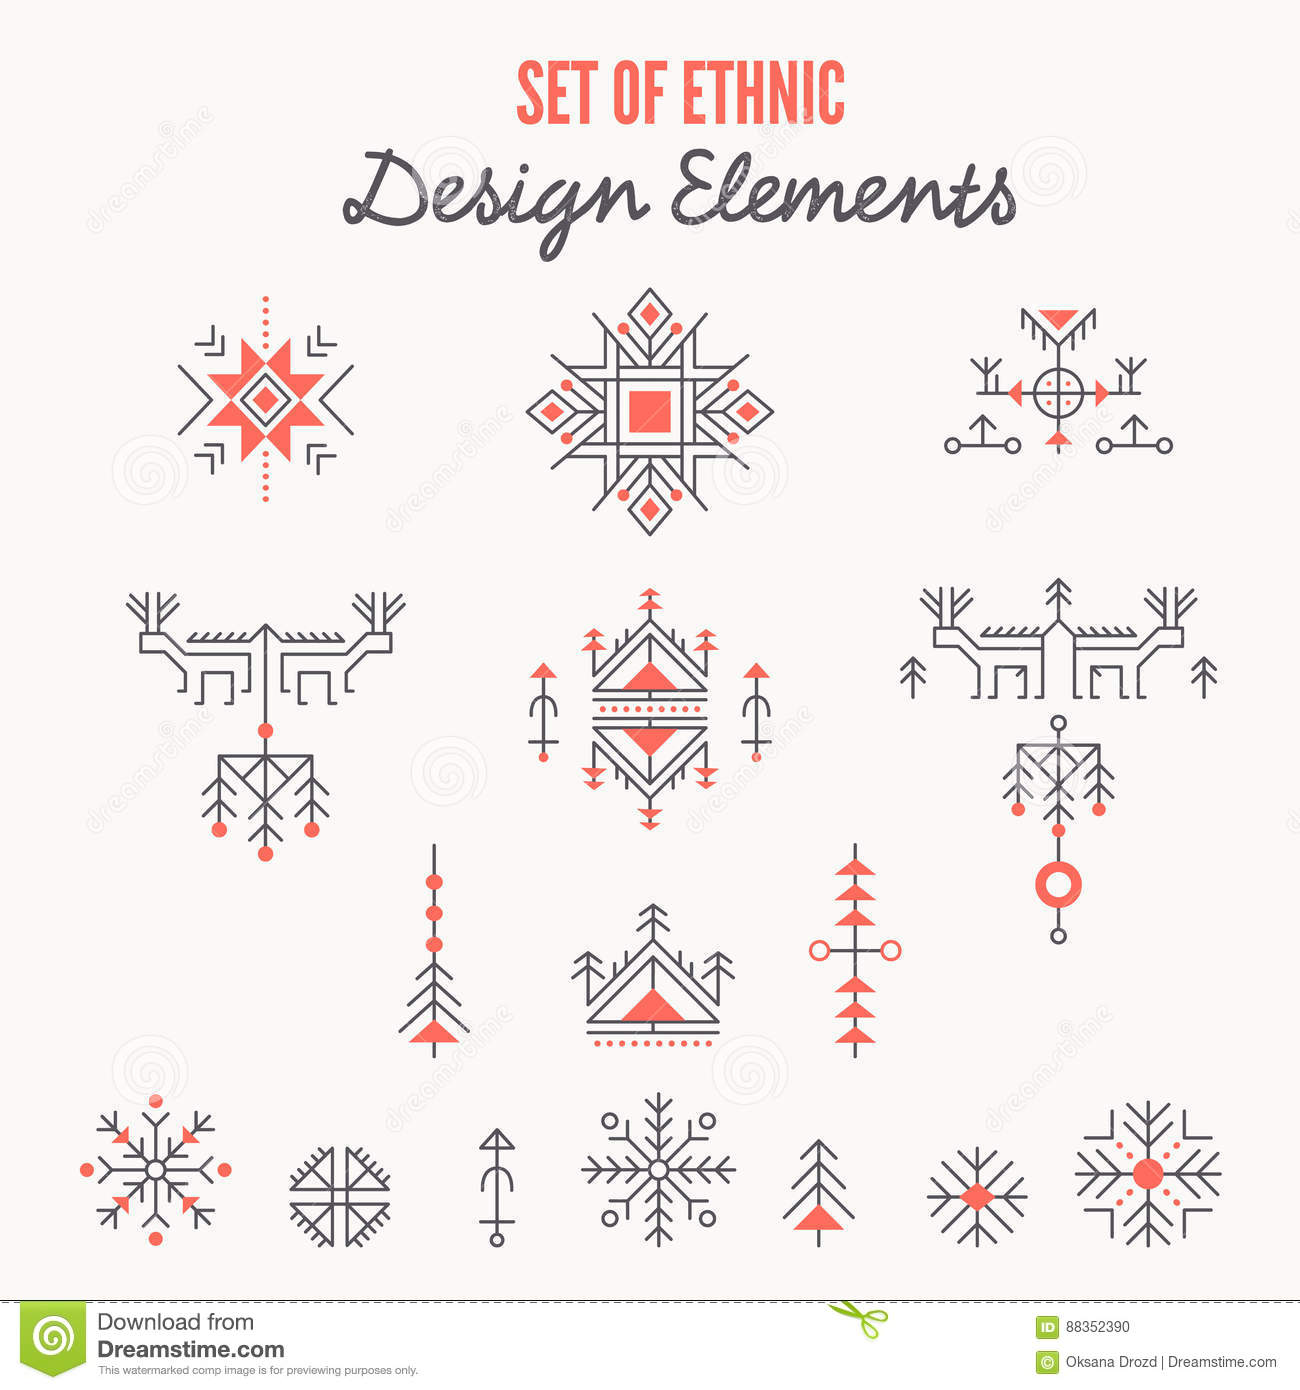 Set of ethnic design elements logo templates line style ancient set of ethnic design elements logo templates line style ancient symbols buycottarizona